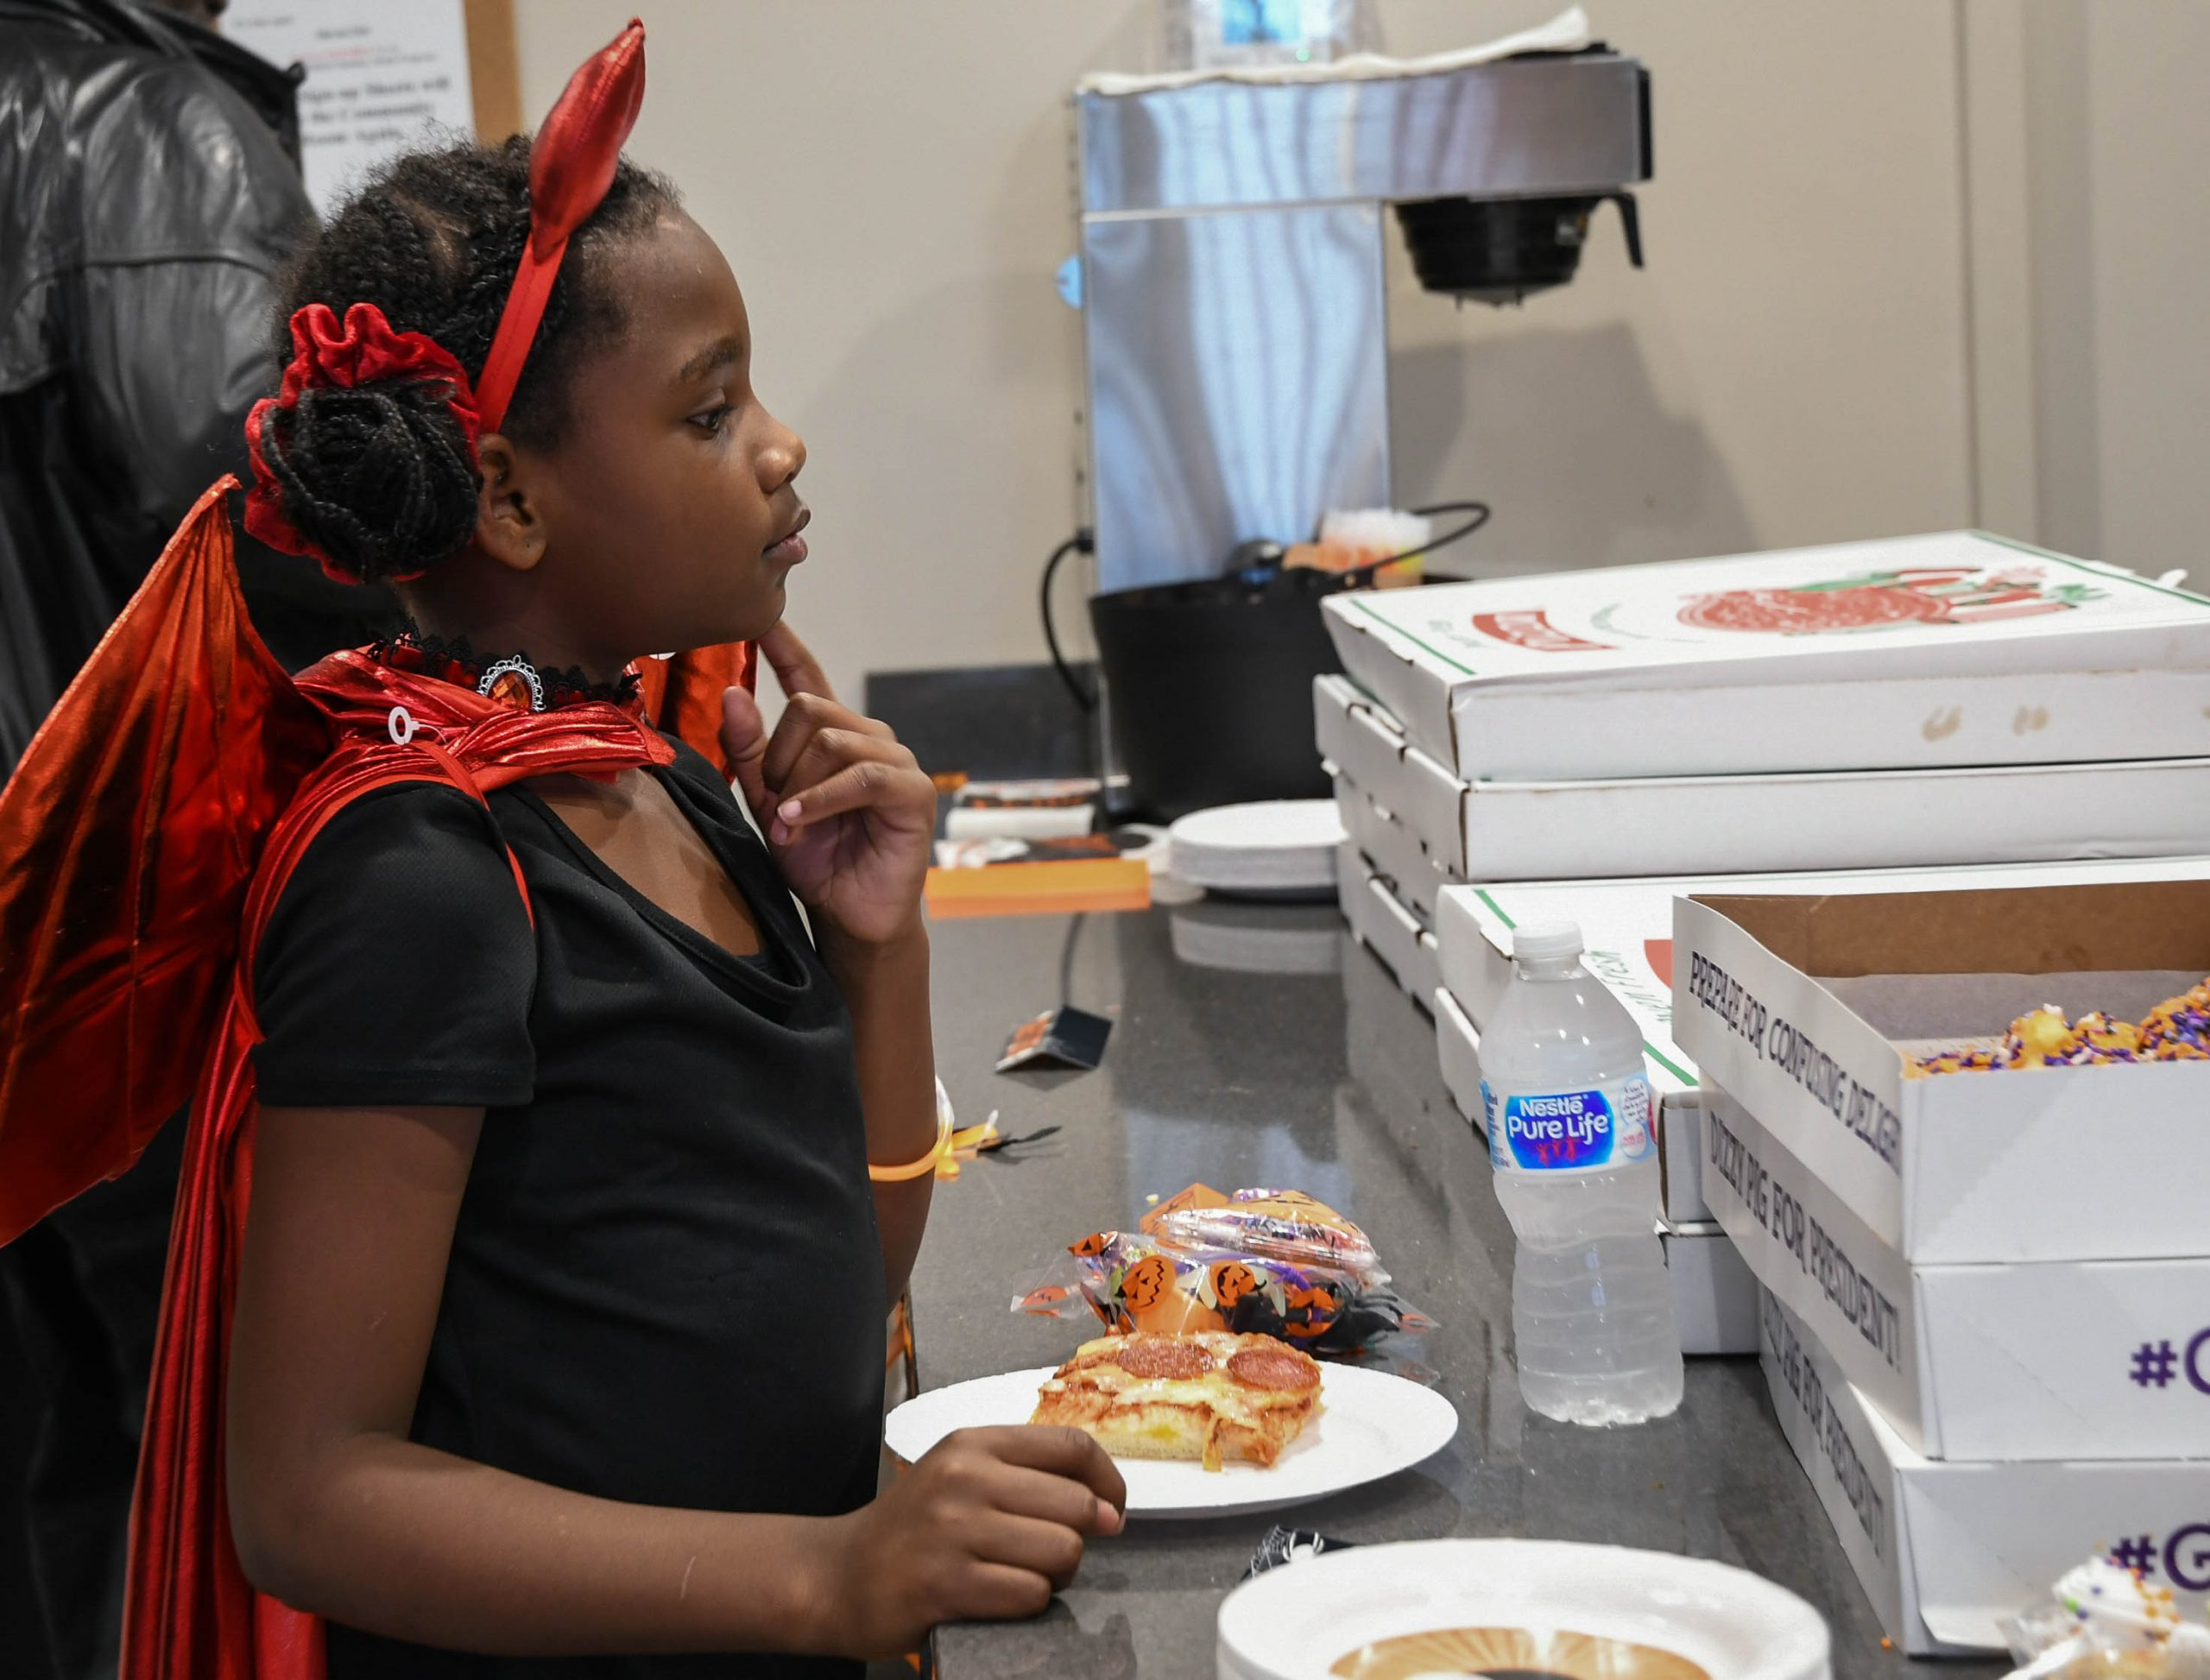 Amarionna Brown contemplates which donut to choose at Clinton Plaza's Halloween party on October 31, 2019.